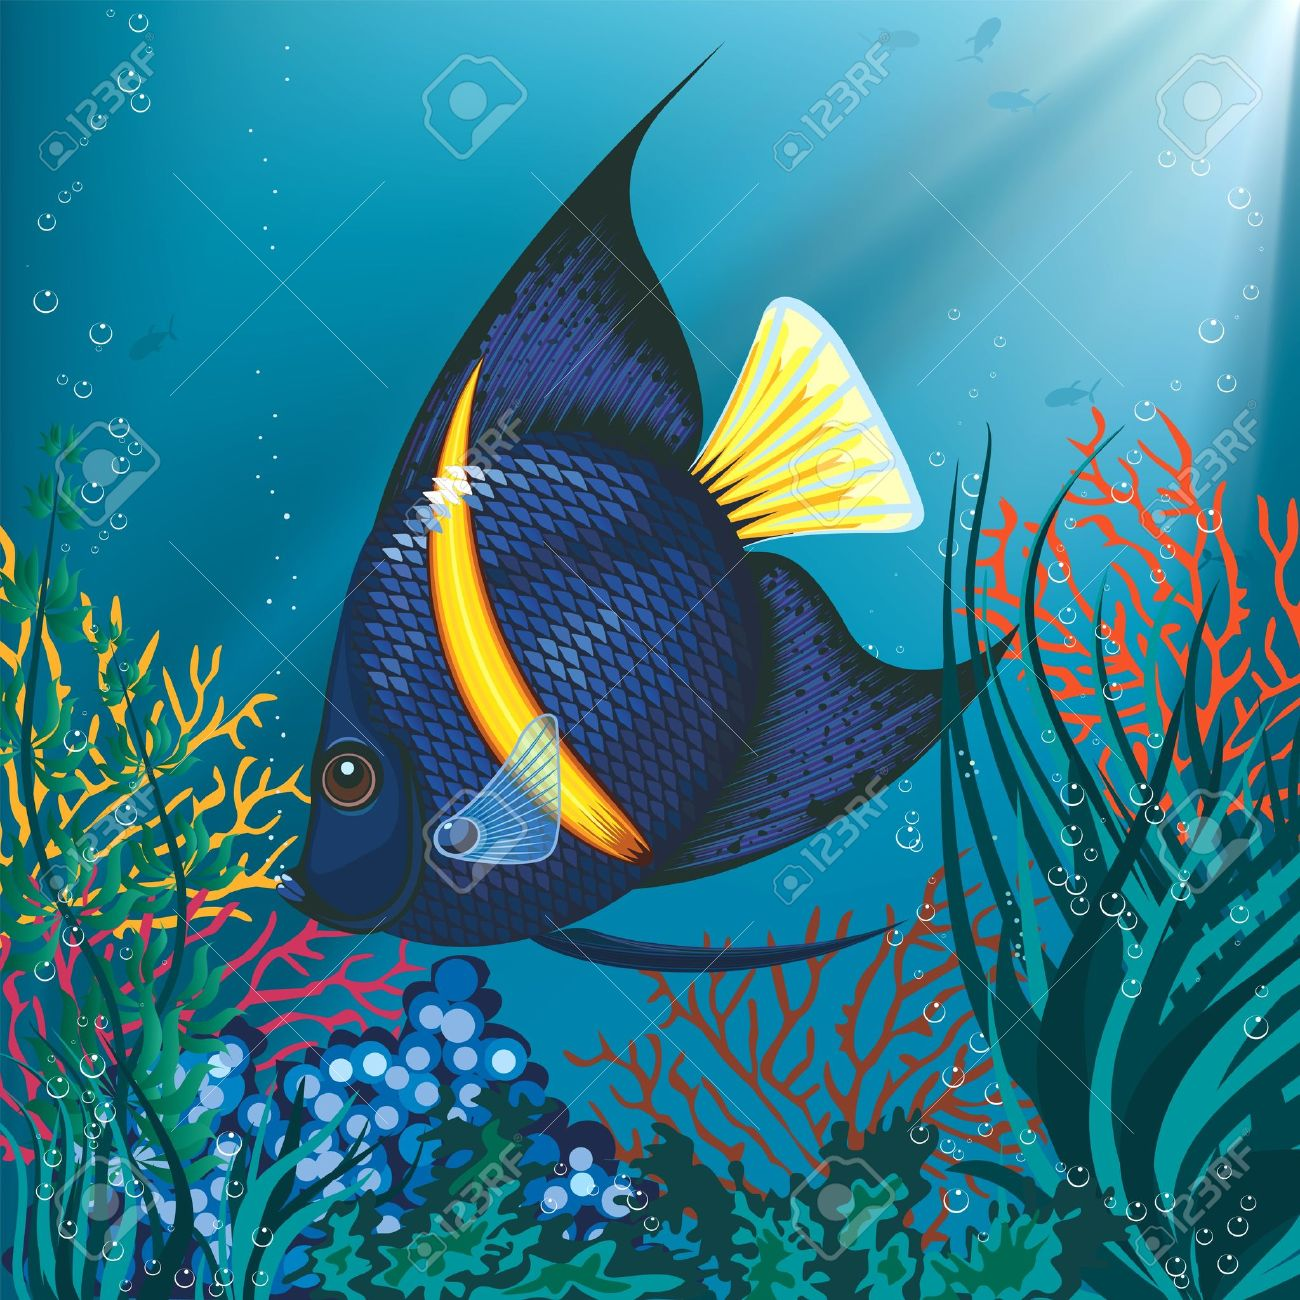 Illustration Of A Tropical Fish Swimming Underwater Stock Vector